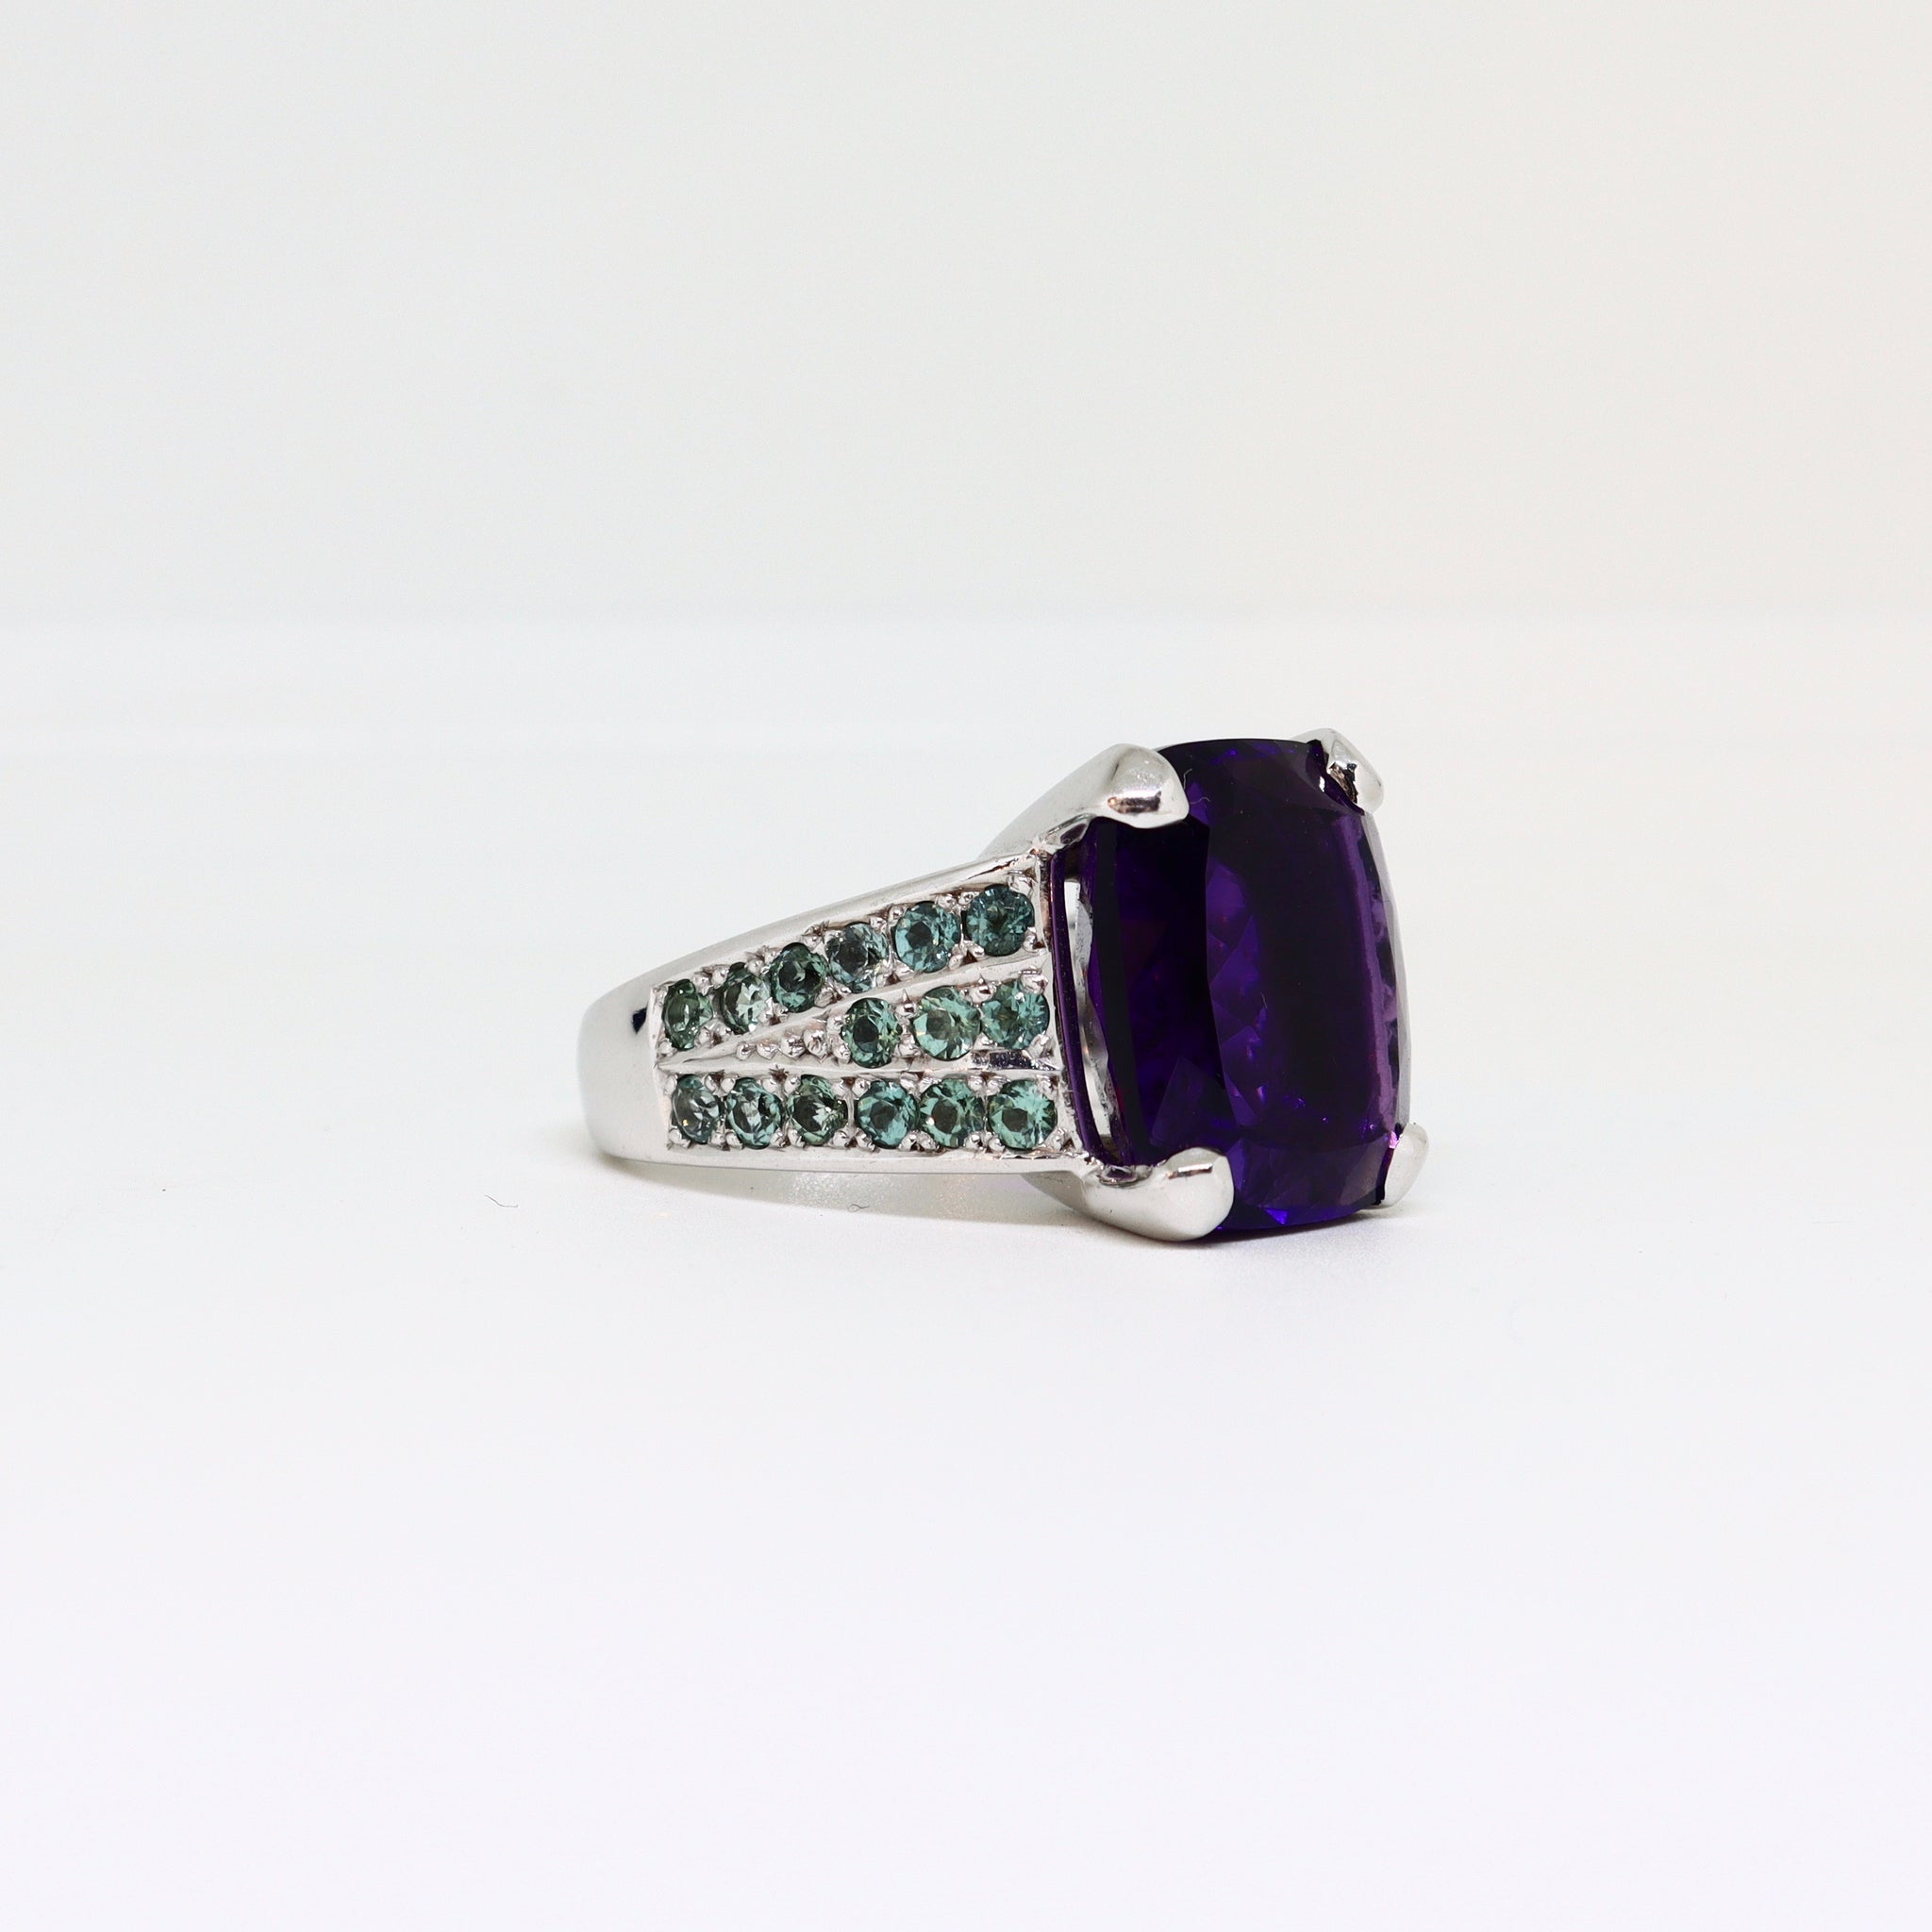 Amethyst ring with channel set Tourmaline shoulders